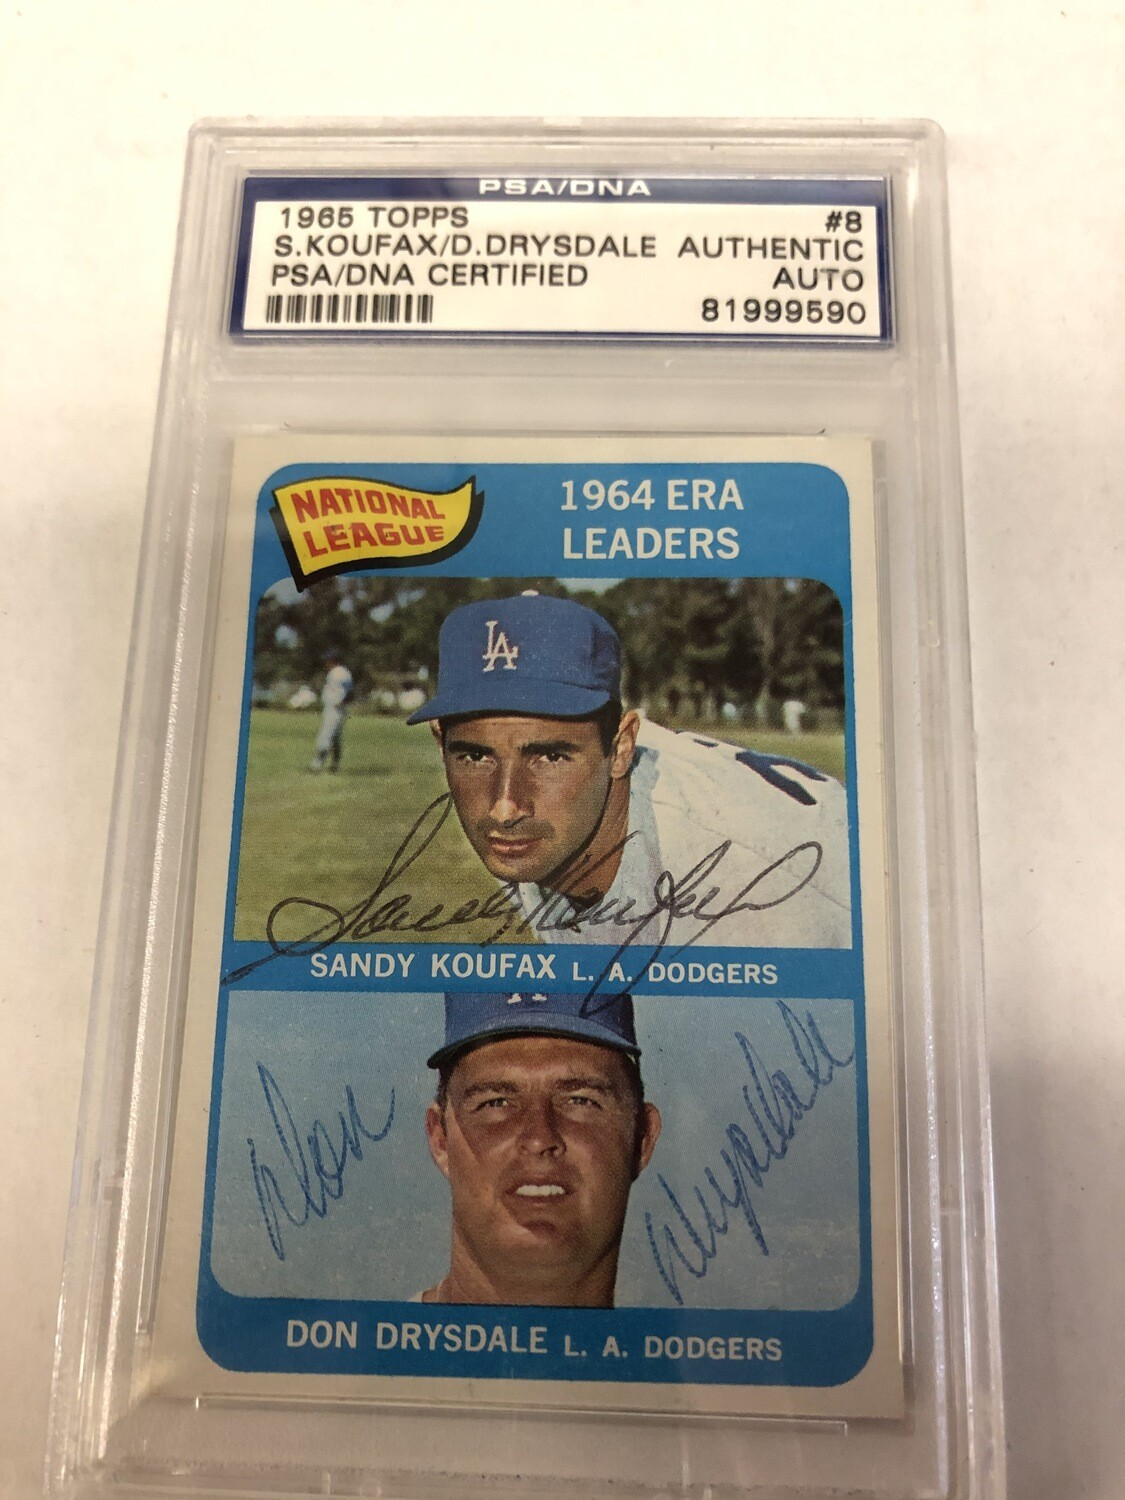 1965 Topps League Leader card signed by Koufax & Drysdale PSA/DNA